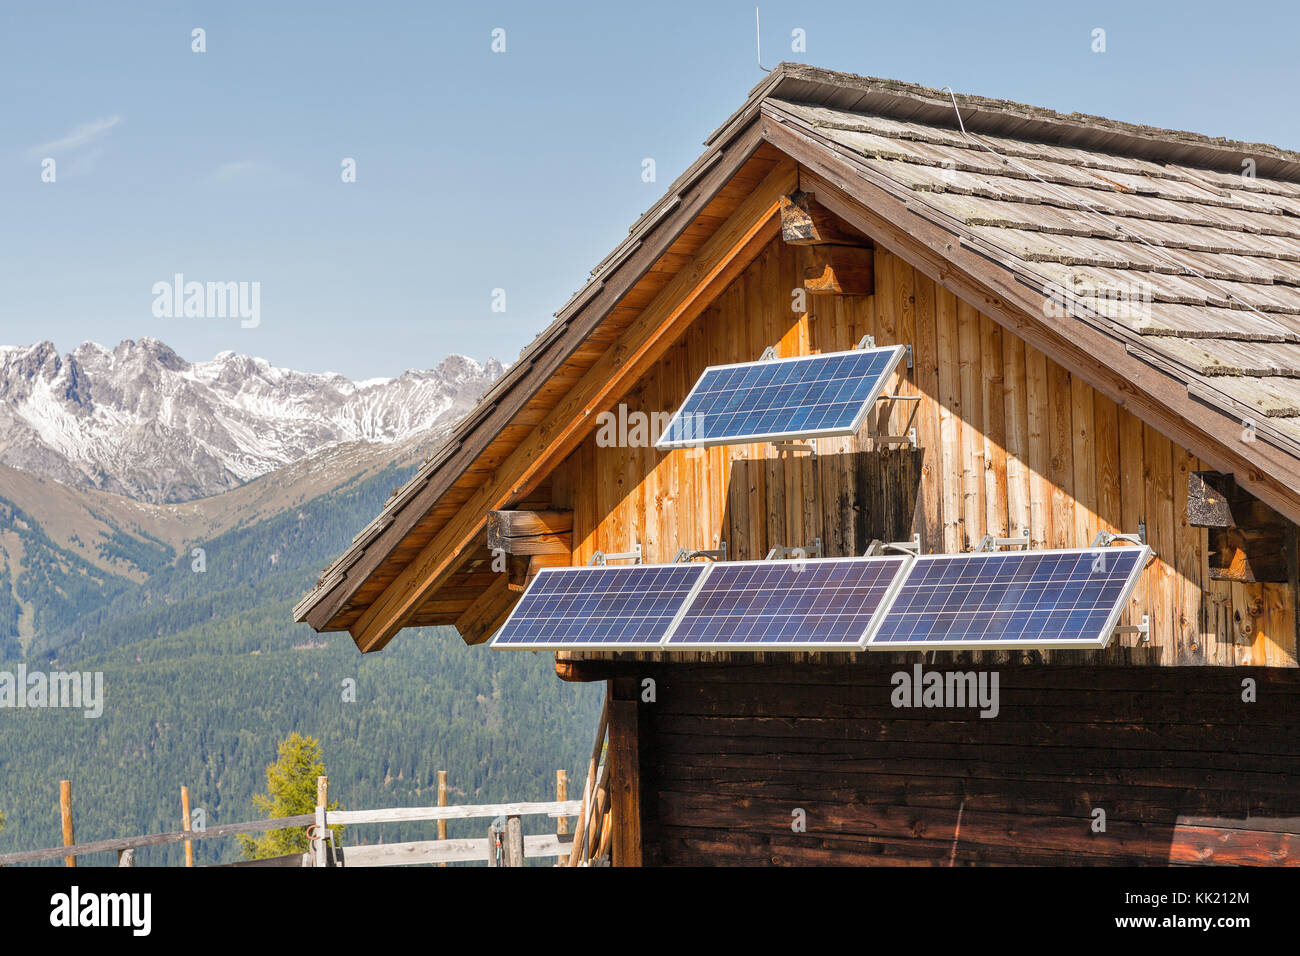 Wooden shepherd lodge with solar panels with Alpine mountain landscape in Western Carinthia, Austria. Stock Photo